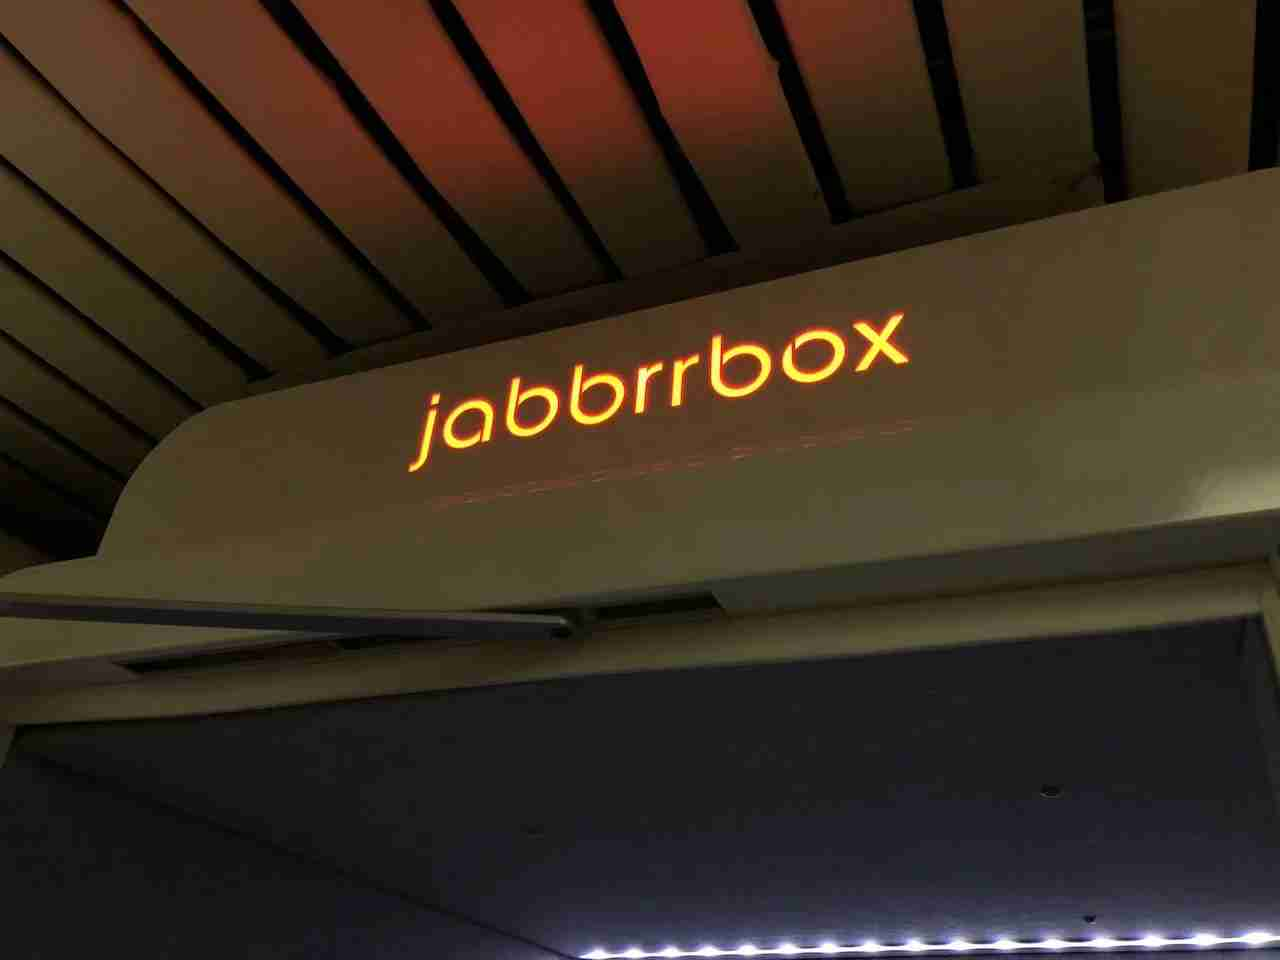 The Jabbrrbox Logo in Red Indicating The Pod Is In Use